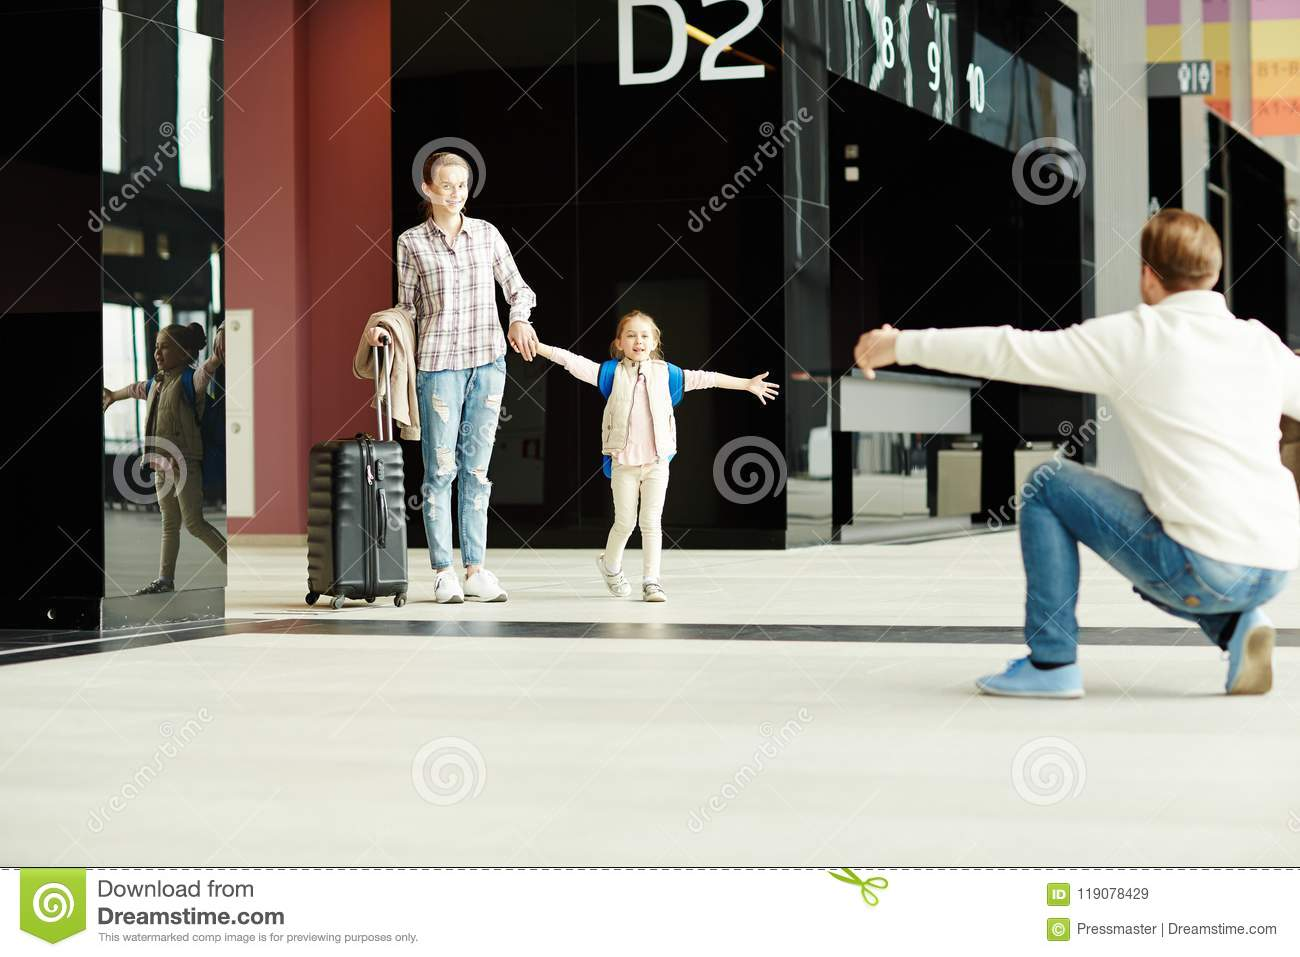 Arrival In Airport Stock Image Image Of Contemporary 119078429